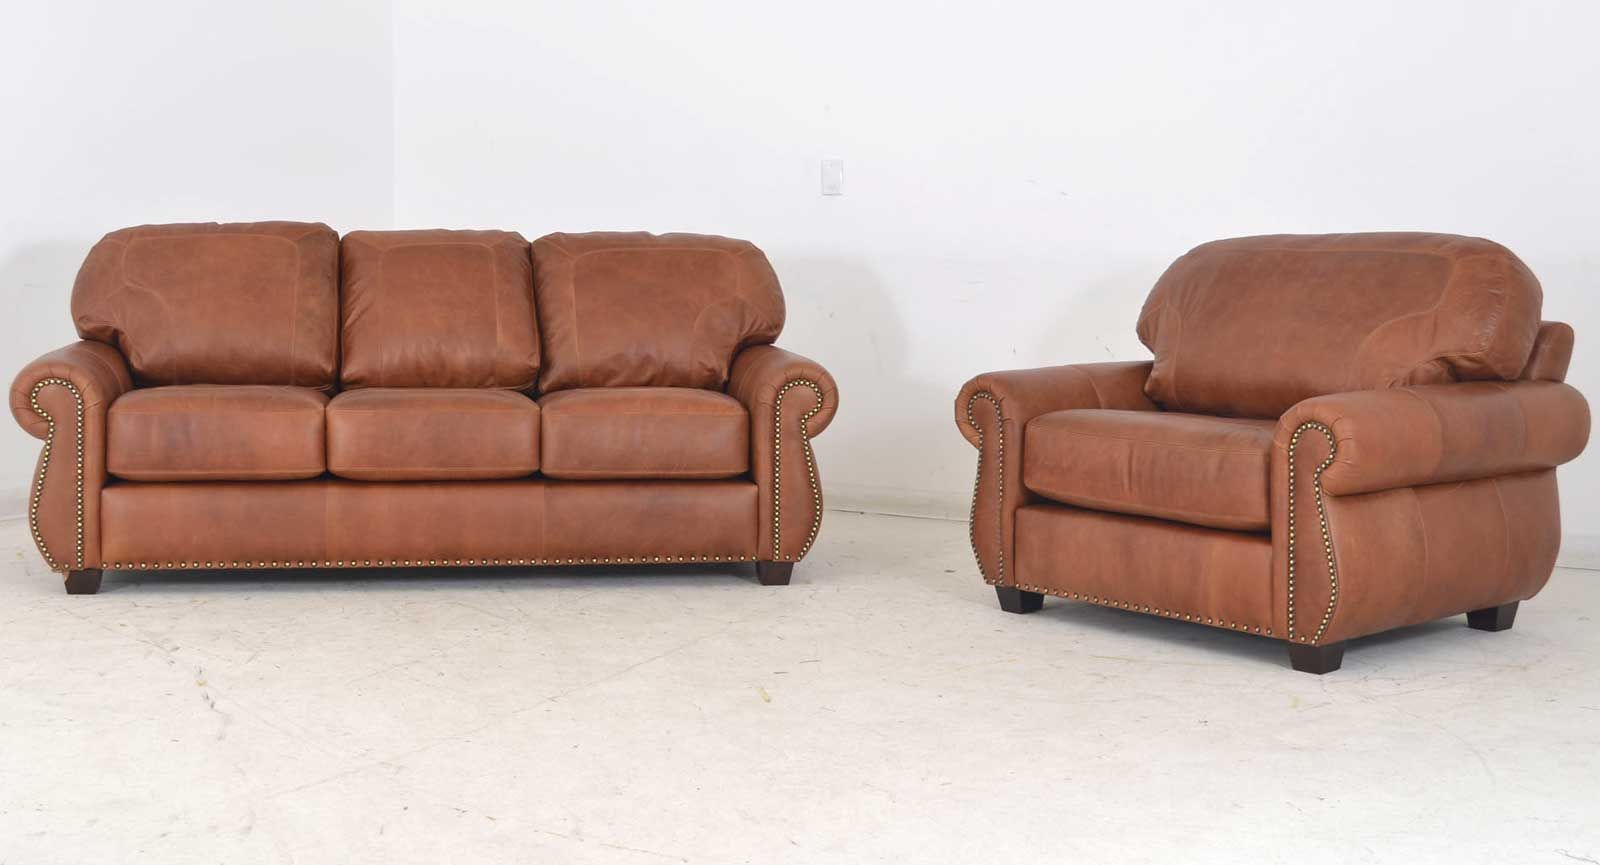 Made in the usa the addison leather sofa chair vintage leather furniture made in the usa manufacturing featured with a picture framed cushion and nail